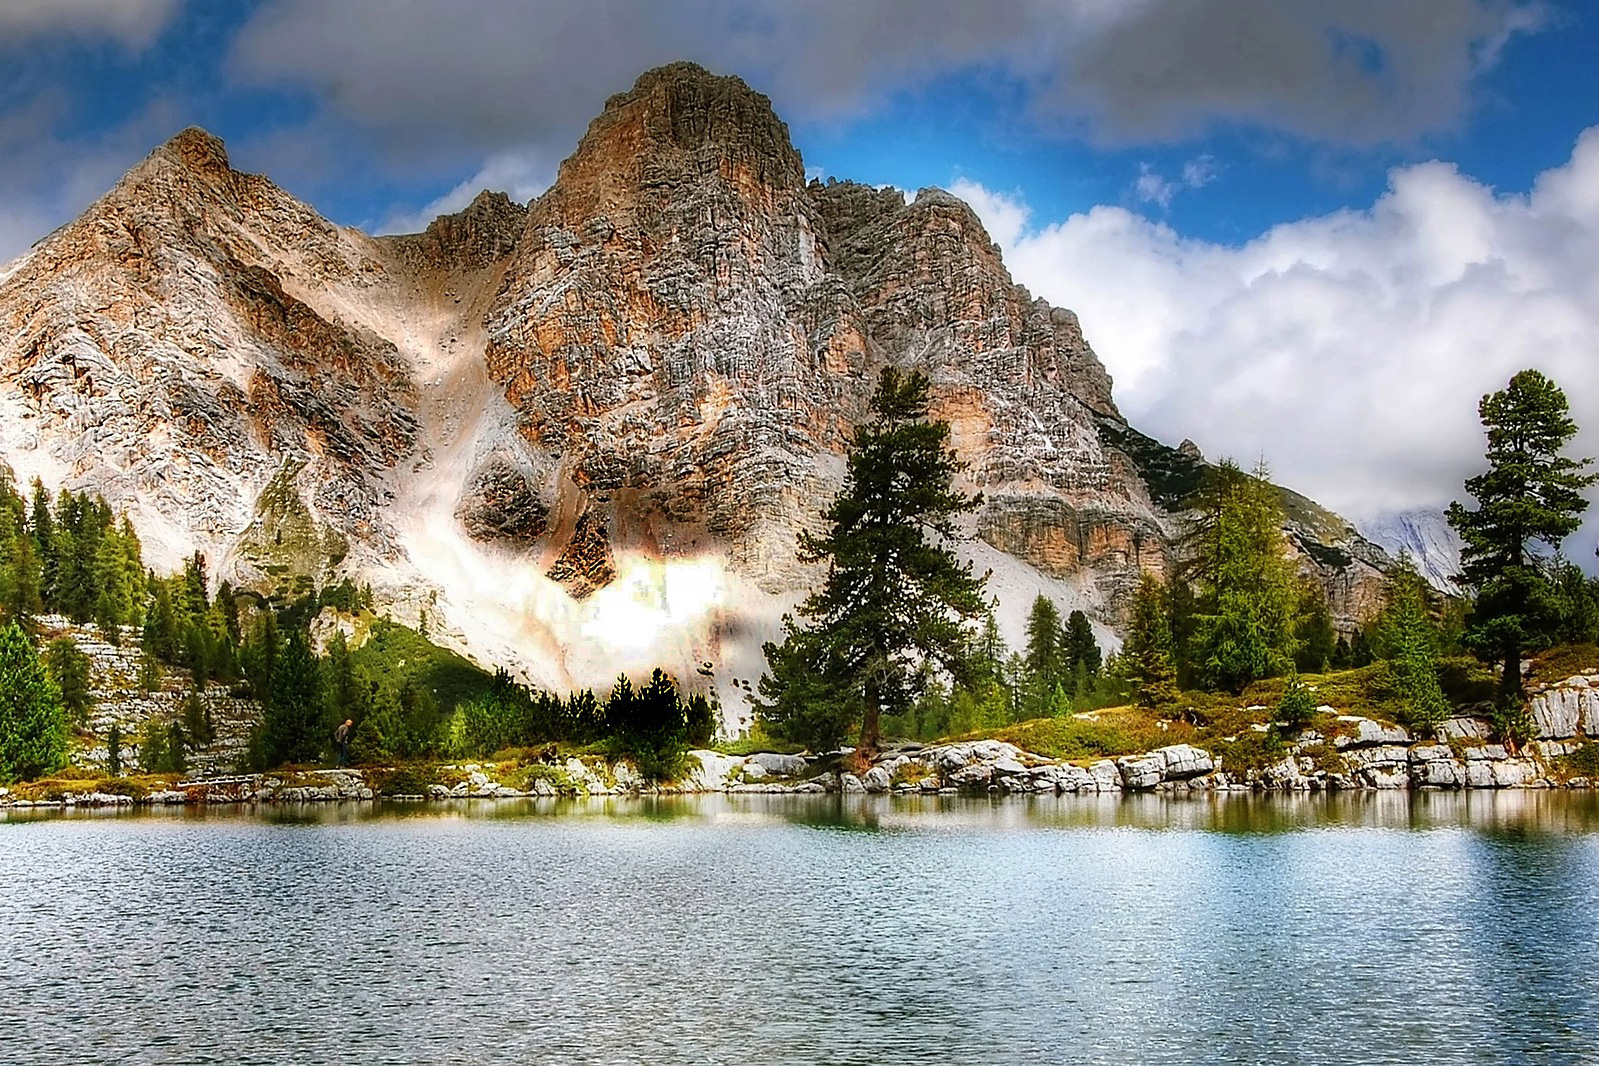 can_dolomites-2371179_1920